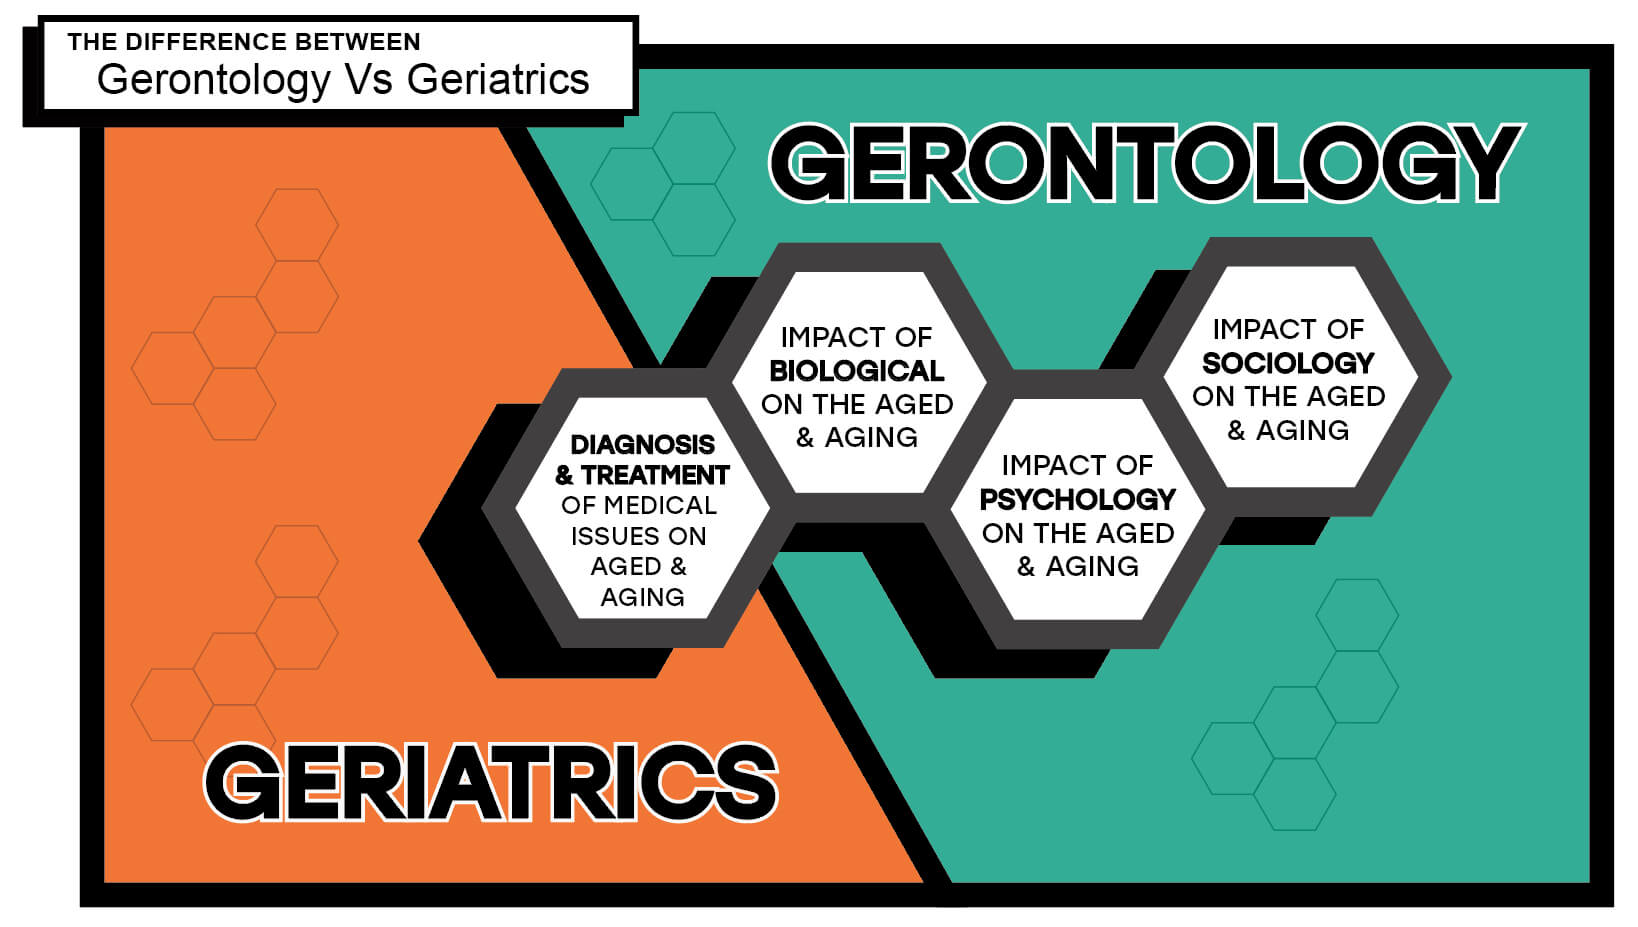 Differences Between Gerontology and Geriatrics Infographic